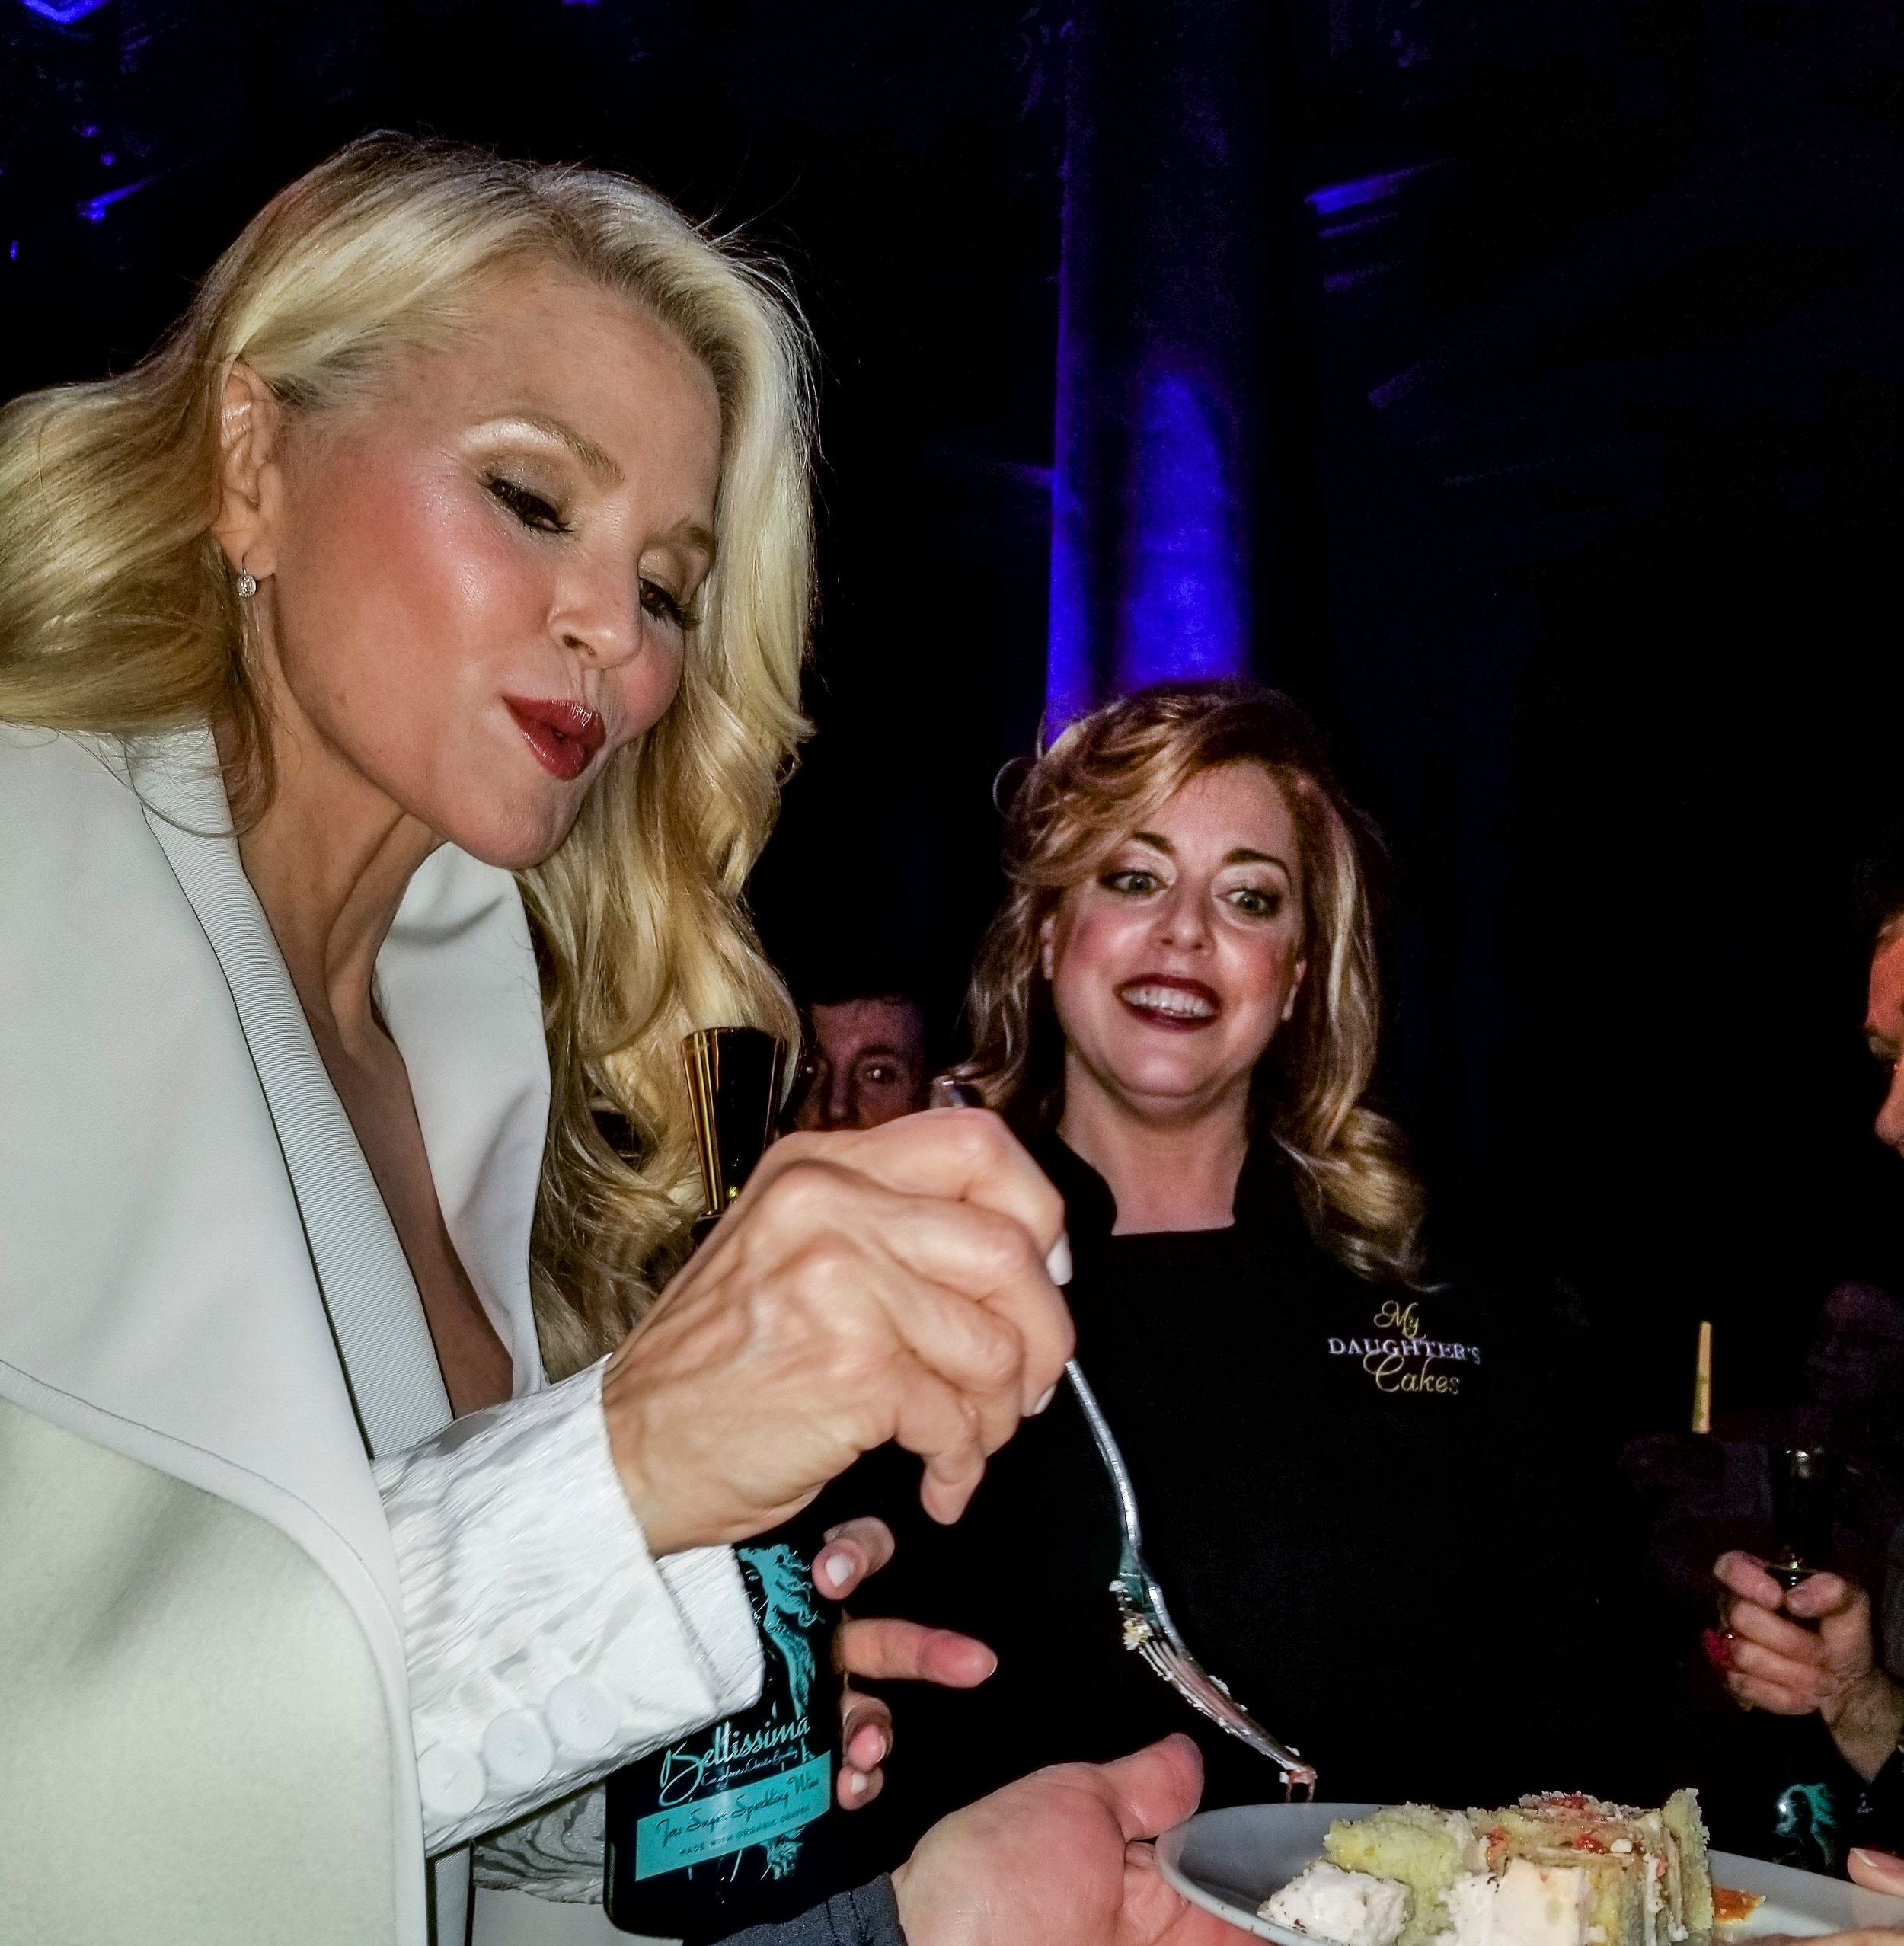 Christie Brinkley Sampling A Cake by My Daughter's Cakes